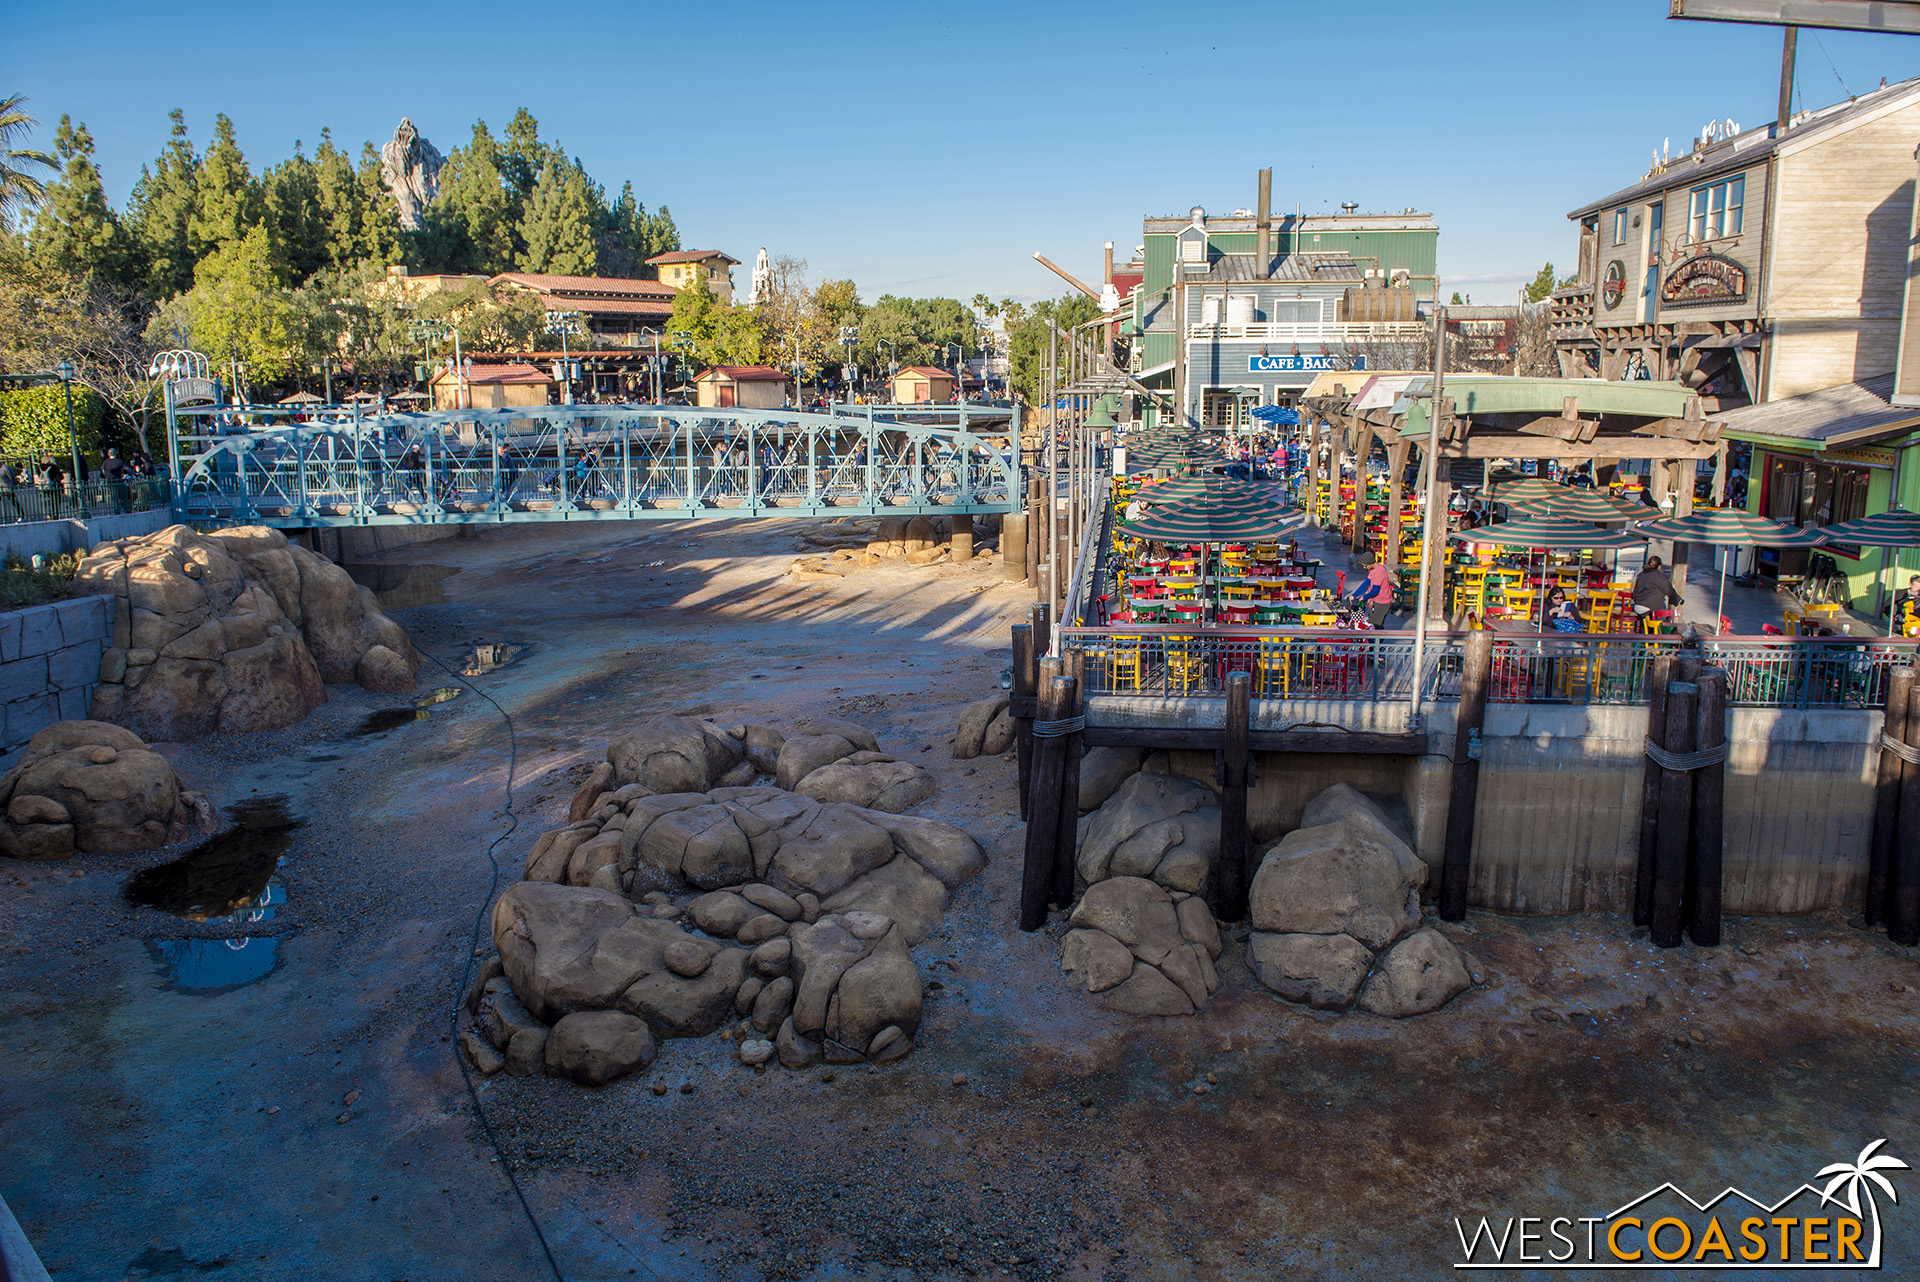 Normally, when they drain Grizzly River Run for its refurb, the water goes into this overflow in Pacific Wharf, but that's been drained too!